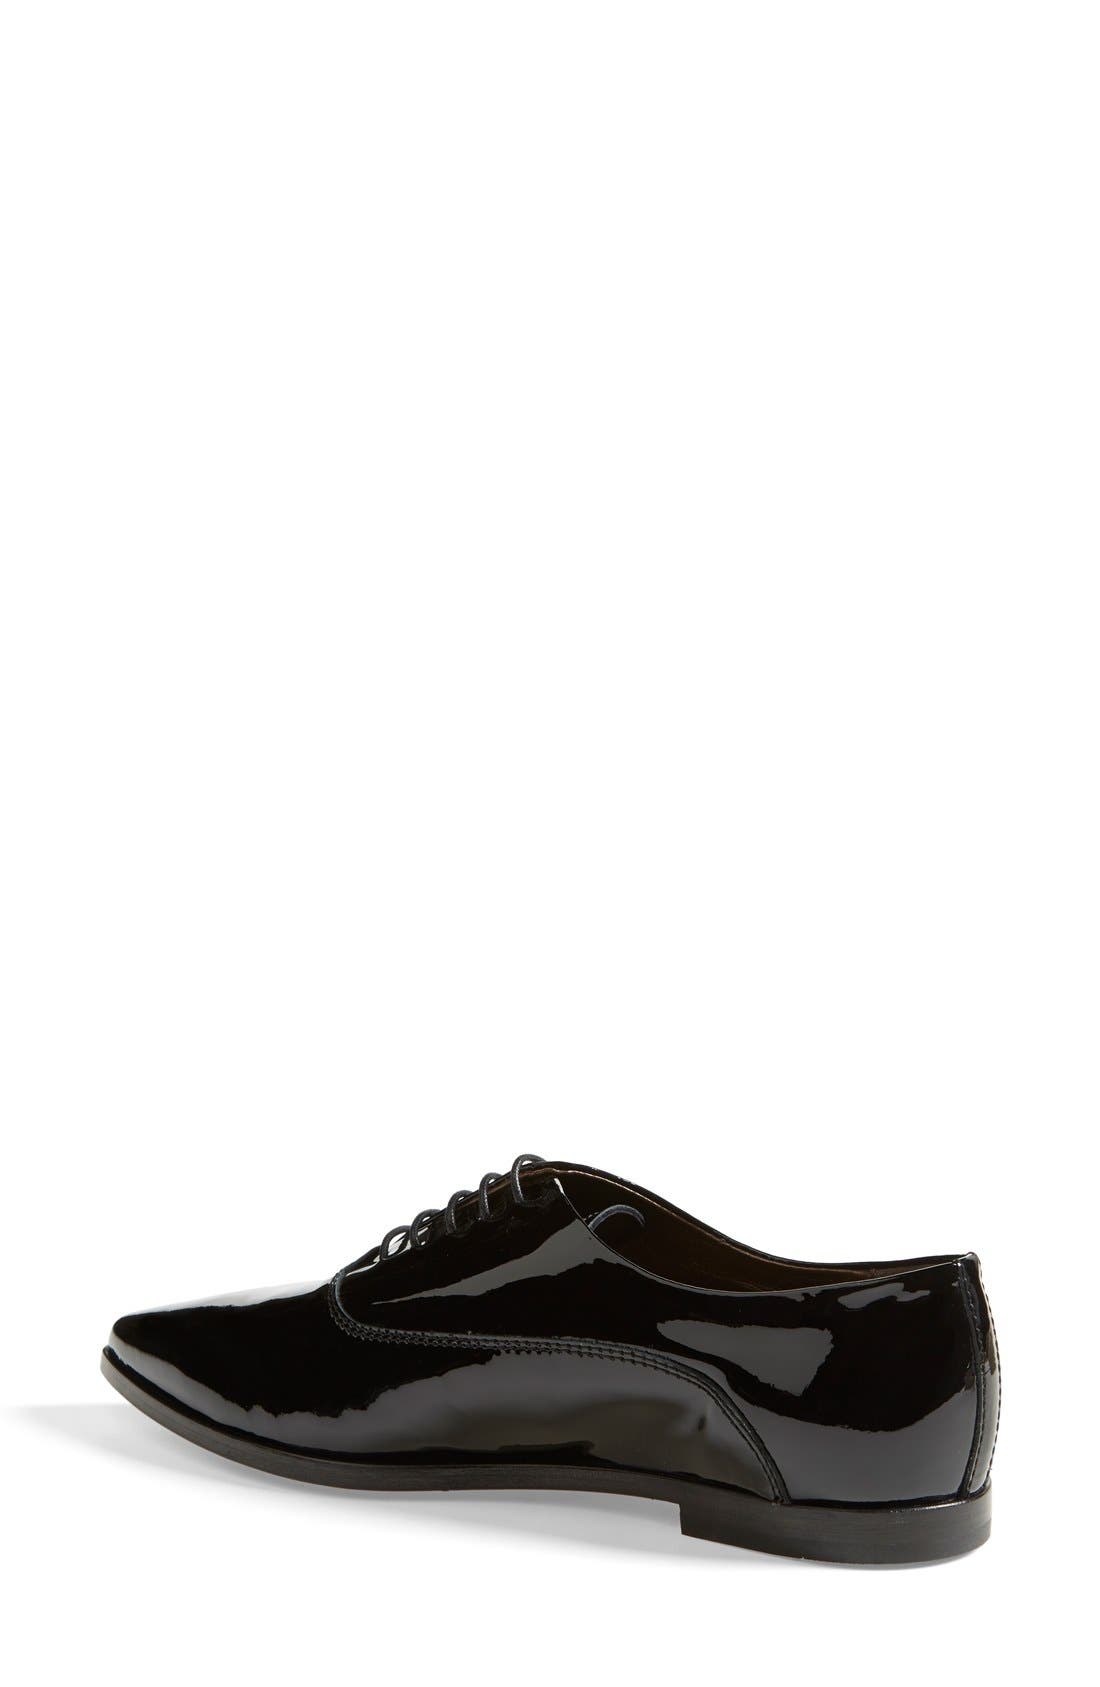 AGL,                             Attilio Giusti Leombruni Patent Leather Pointy Toe Oxford,                             Alternate thumbnail 6, color,                             001